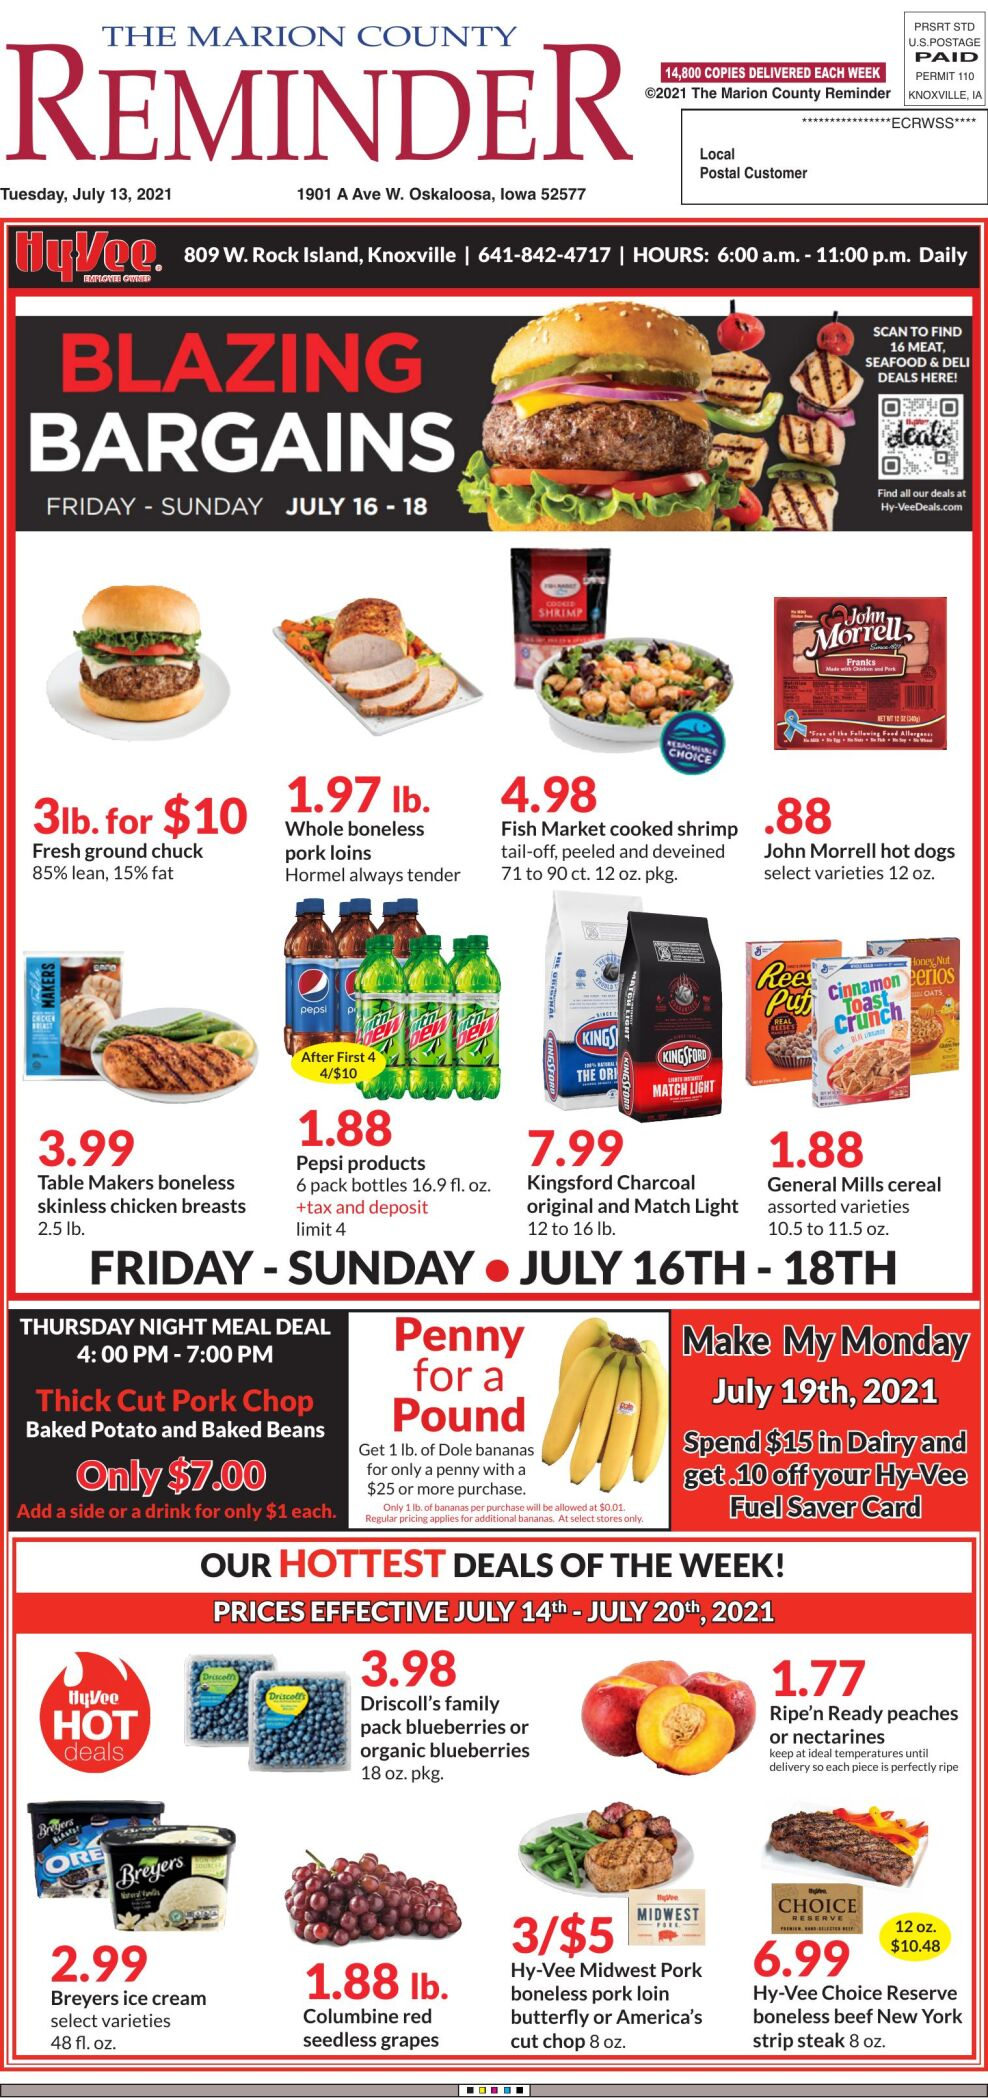 The Marion County Reminder week of 07/13/21